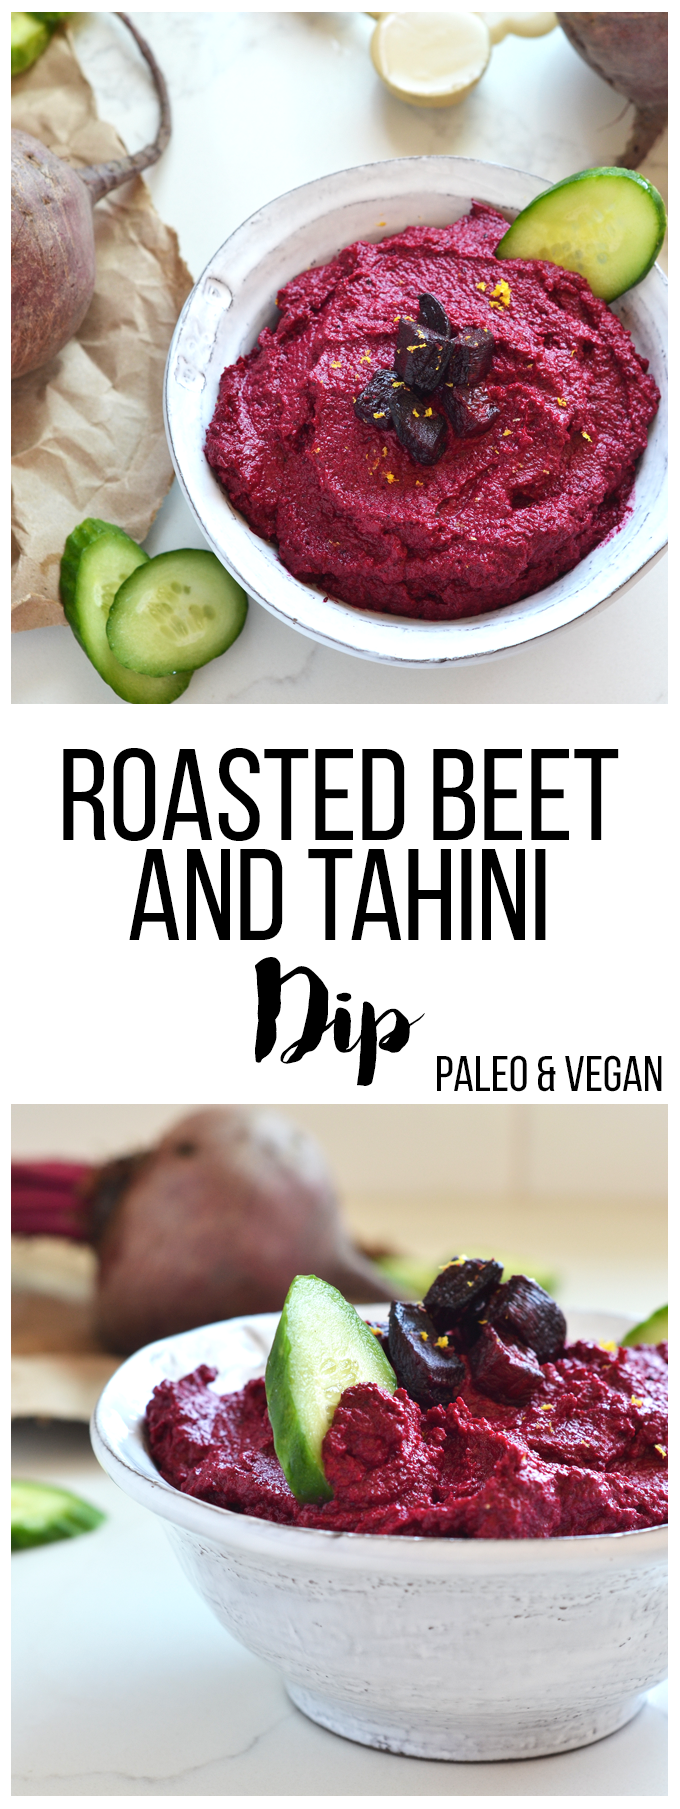 This Roasted Beet & Tahini Dip is the perfect way side dish to bring to any party! Paleo and vegan, there is no one that won't love it!